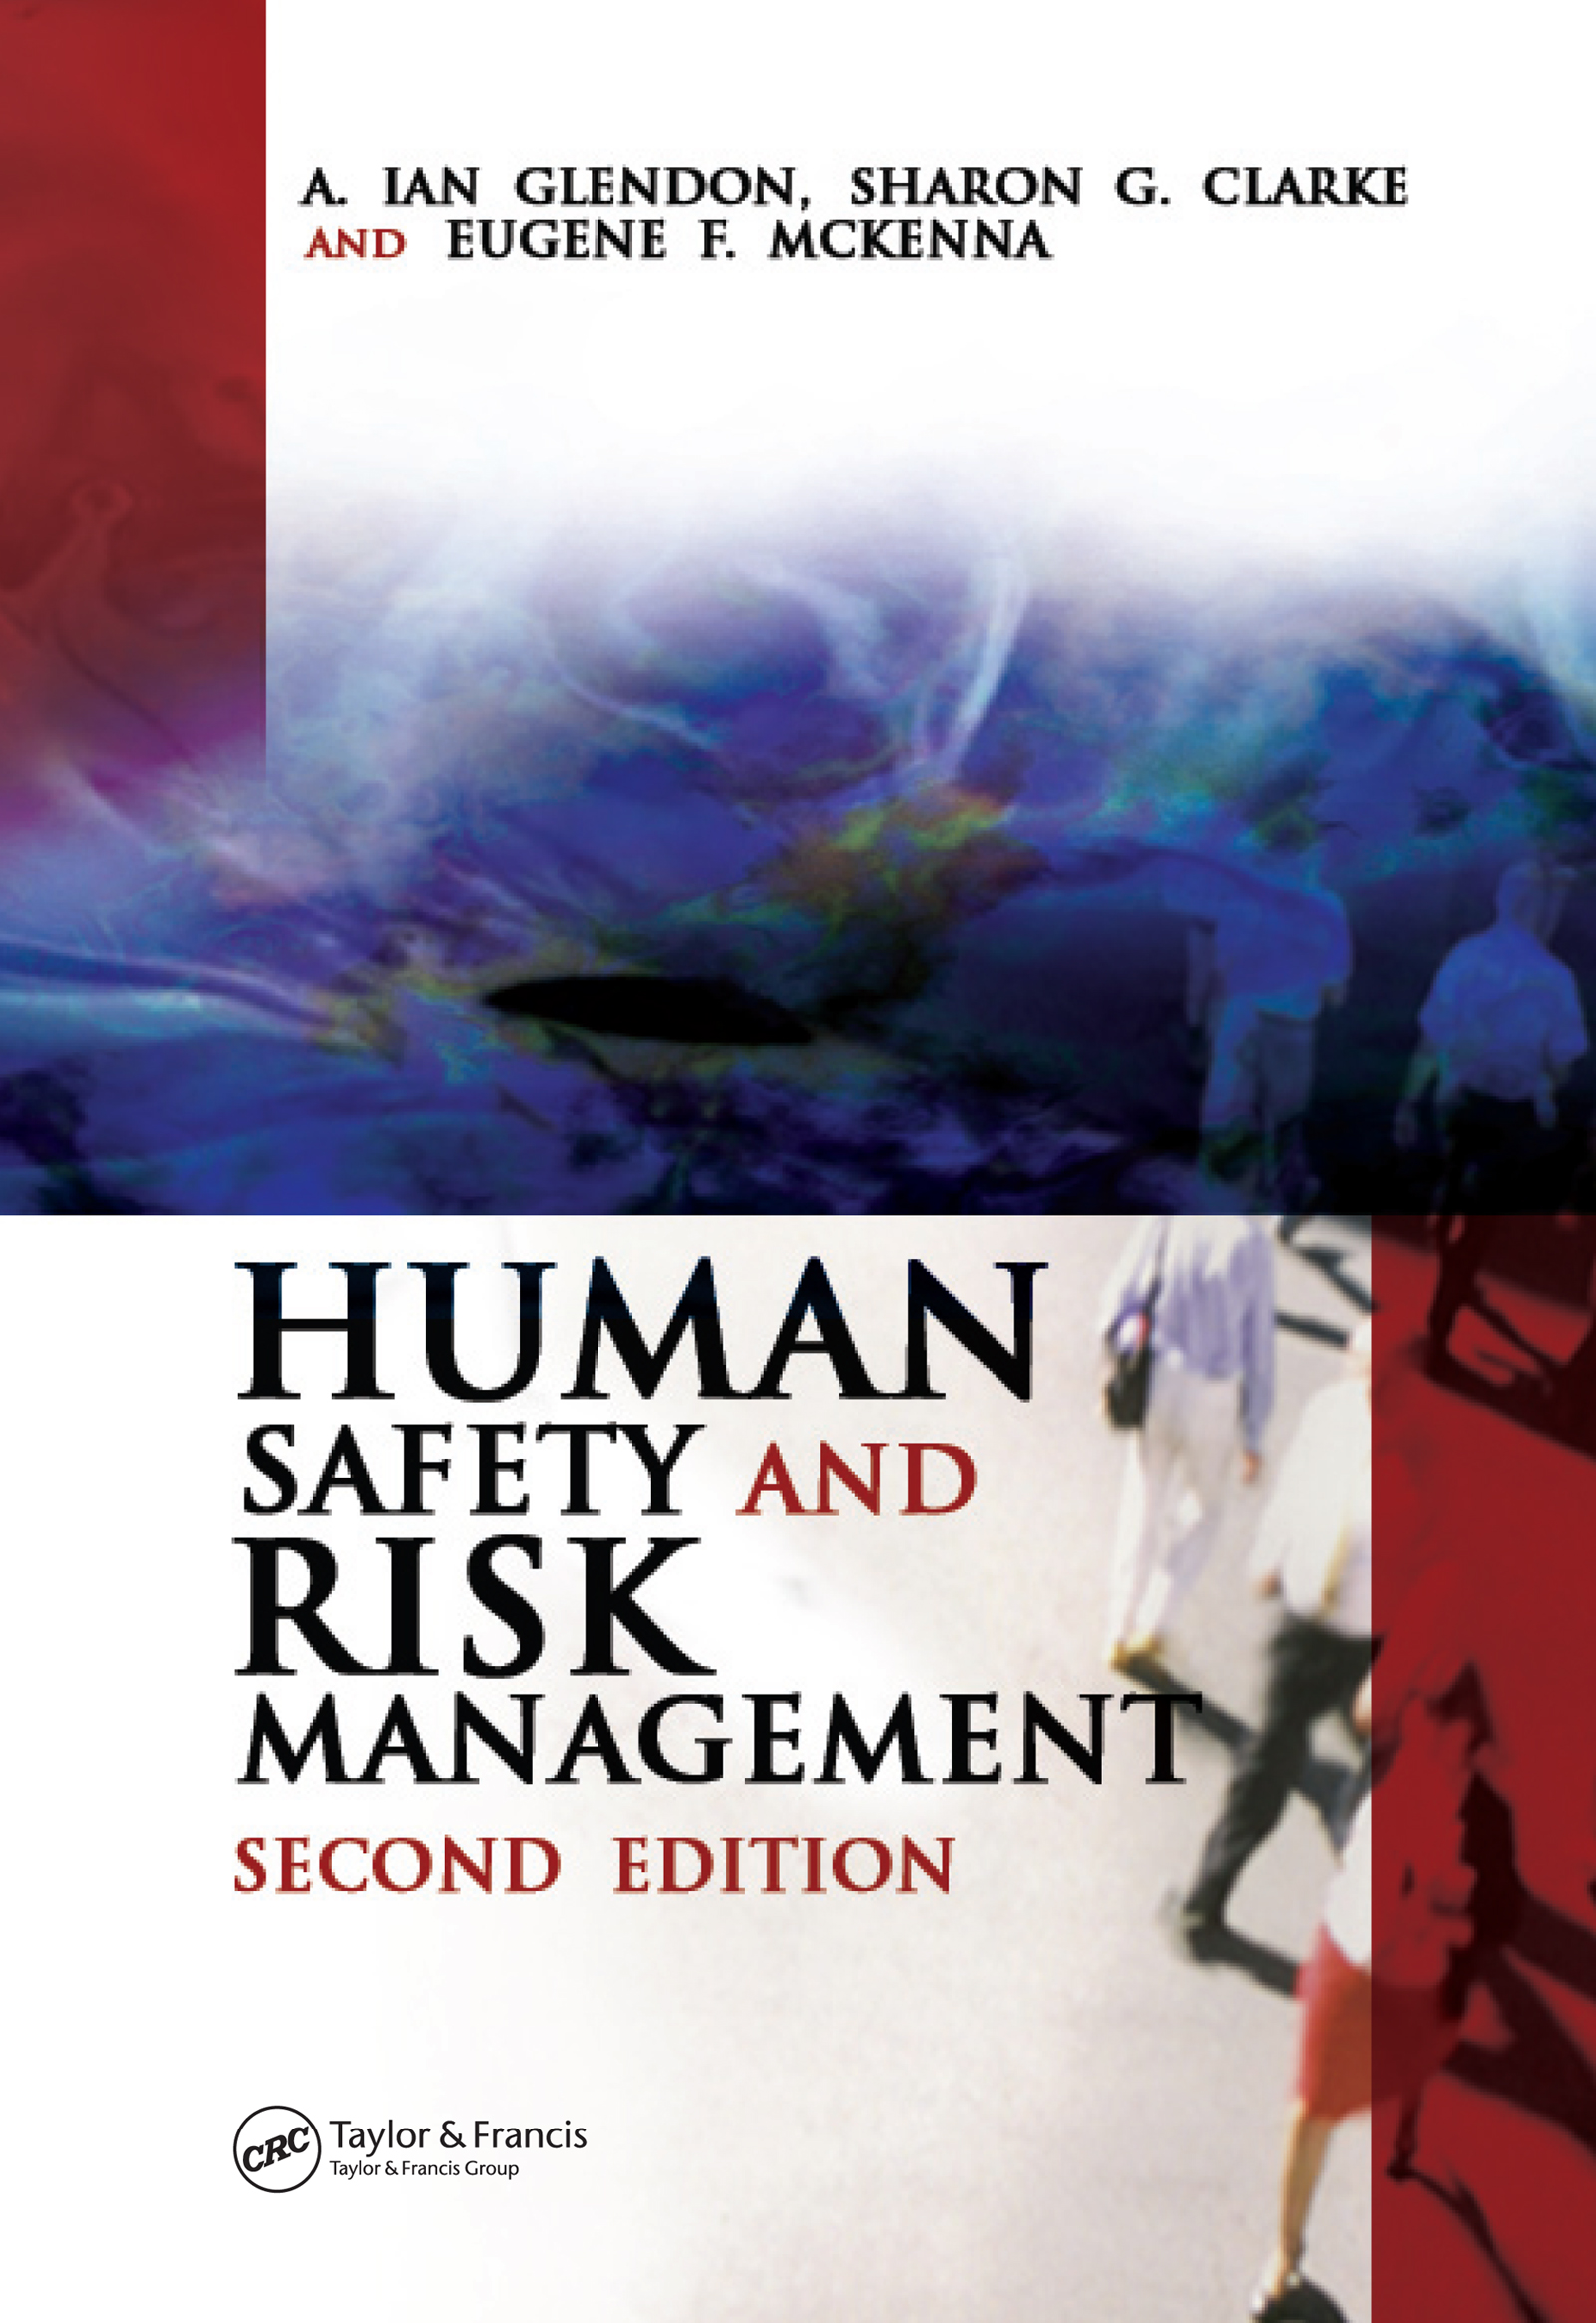 Download Ebook Human Safety and Risk Management (2nd ed.) by A. Ian Glendon Pdf